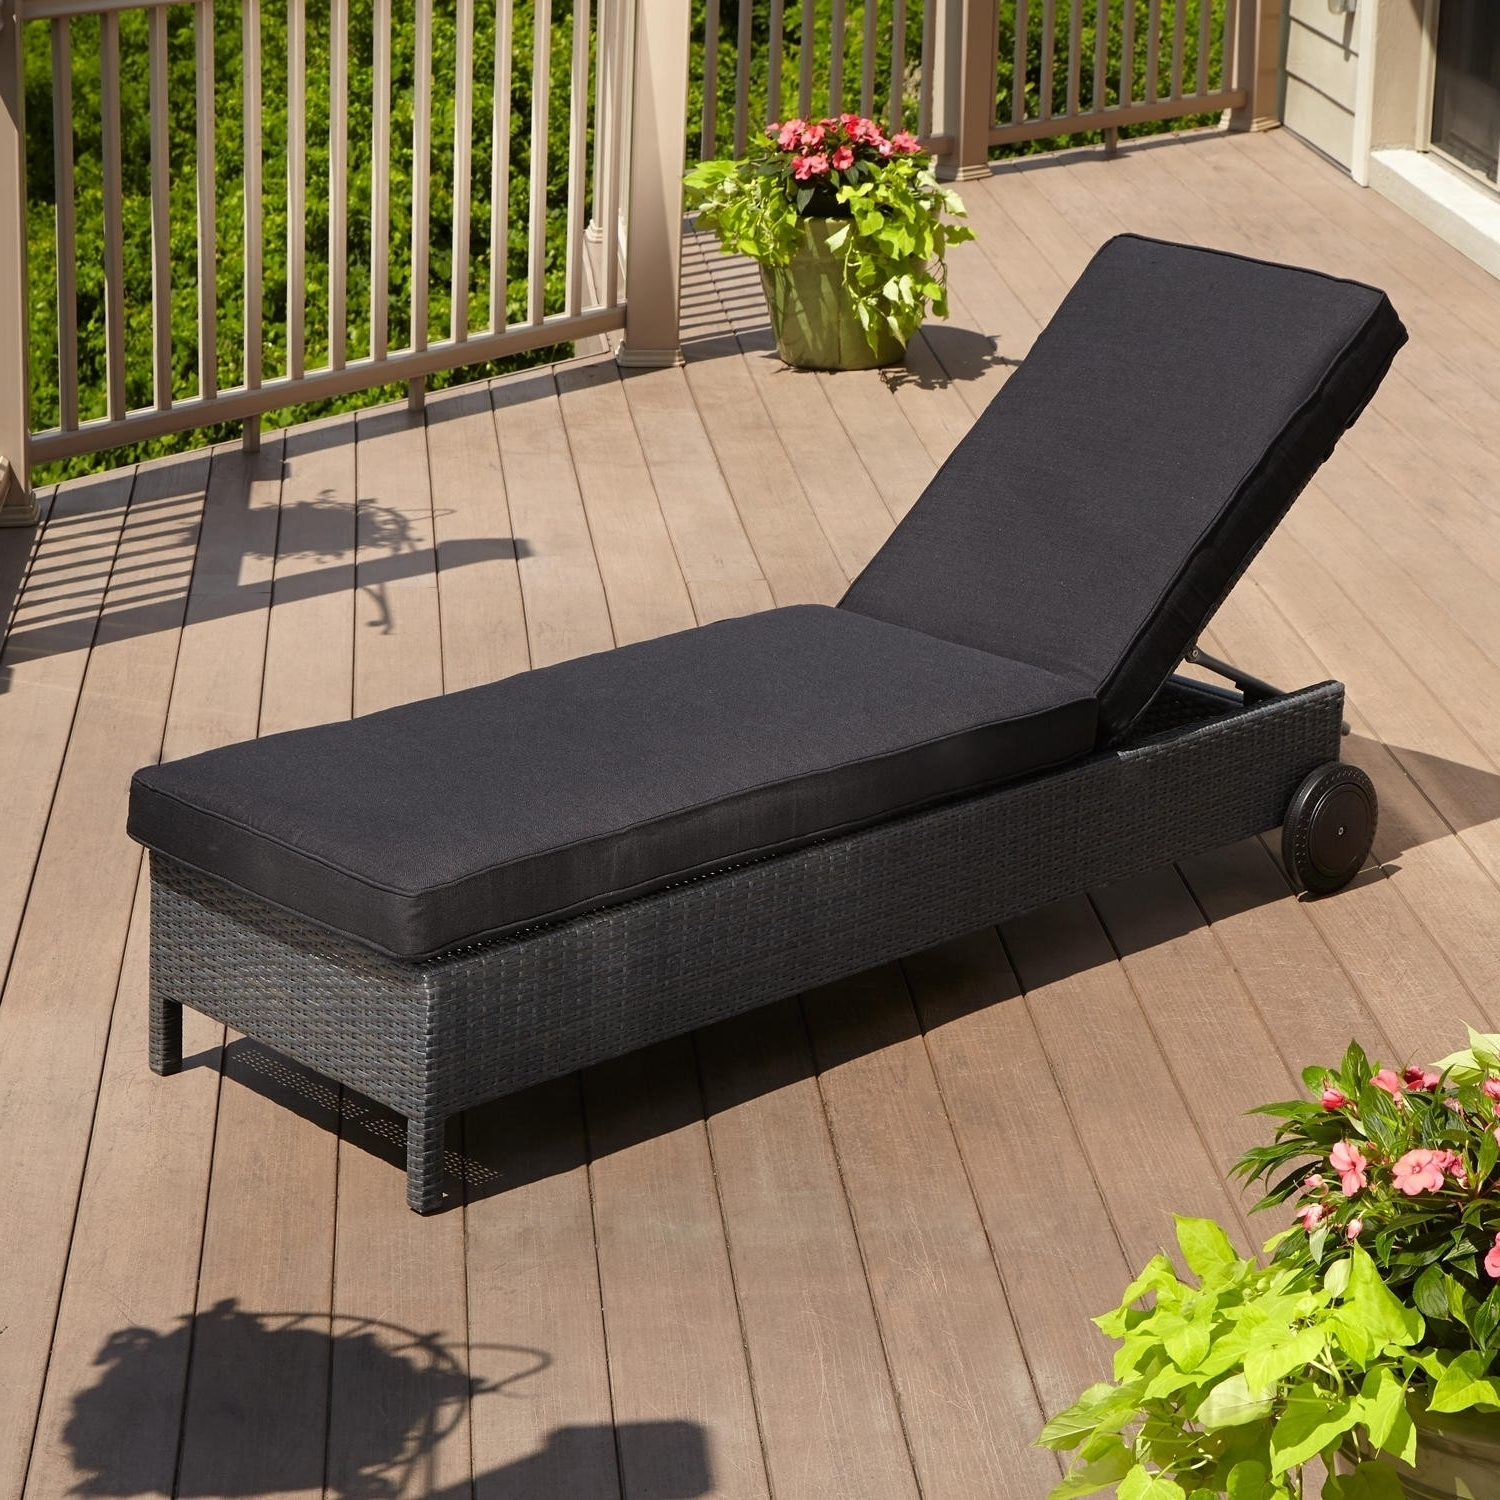 Most Current Inexpensive Outdoor Chaise Lounge Chairs Inside Convertible Chair : Outdoor Garden Chair Cushions Lounge Seat (View 14 of 15)